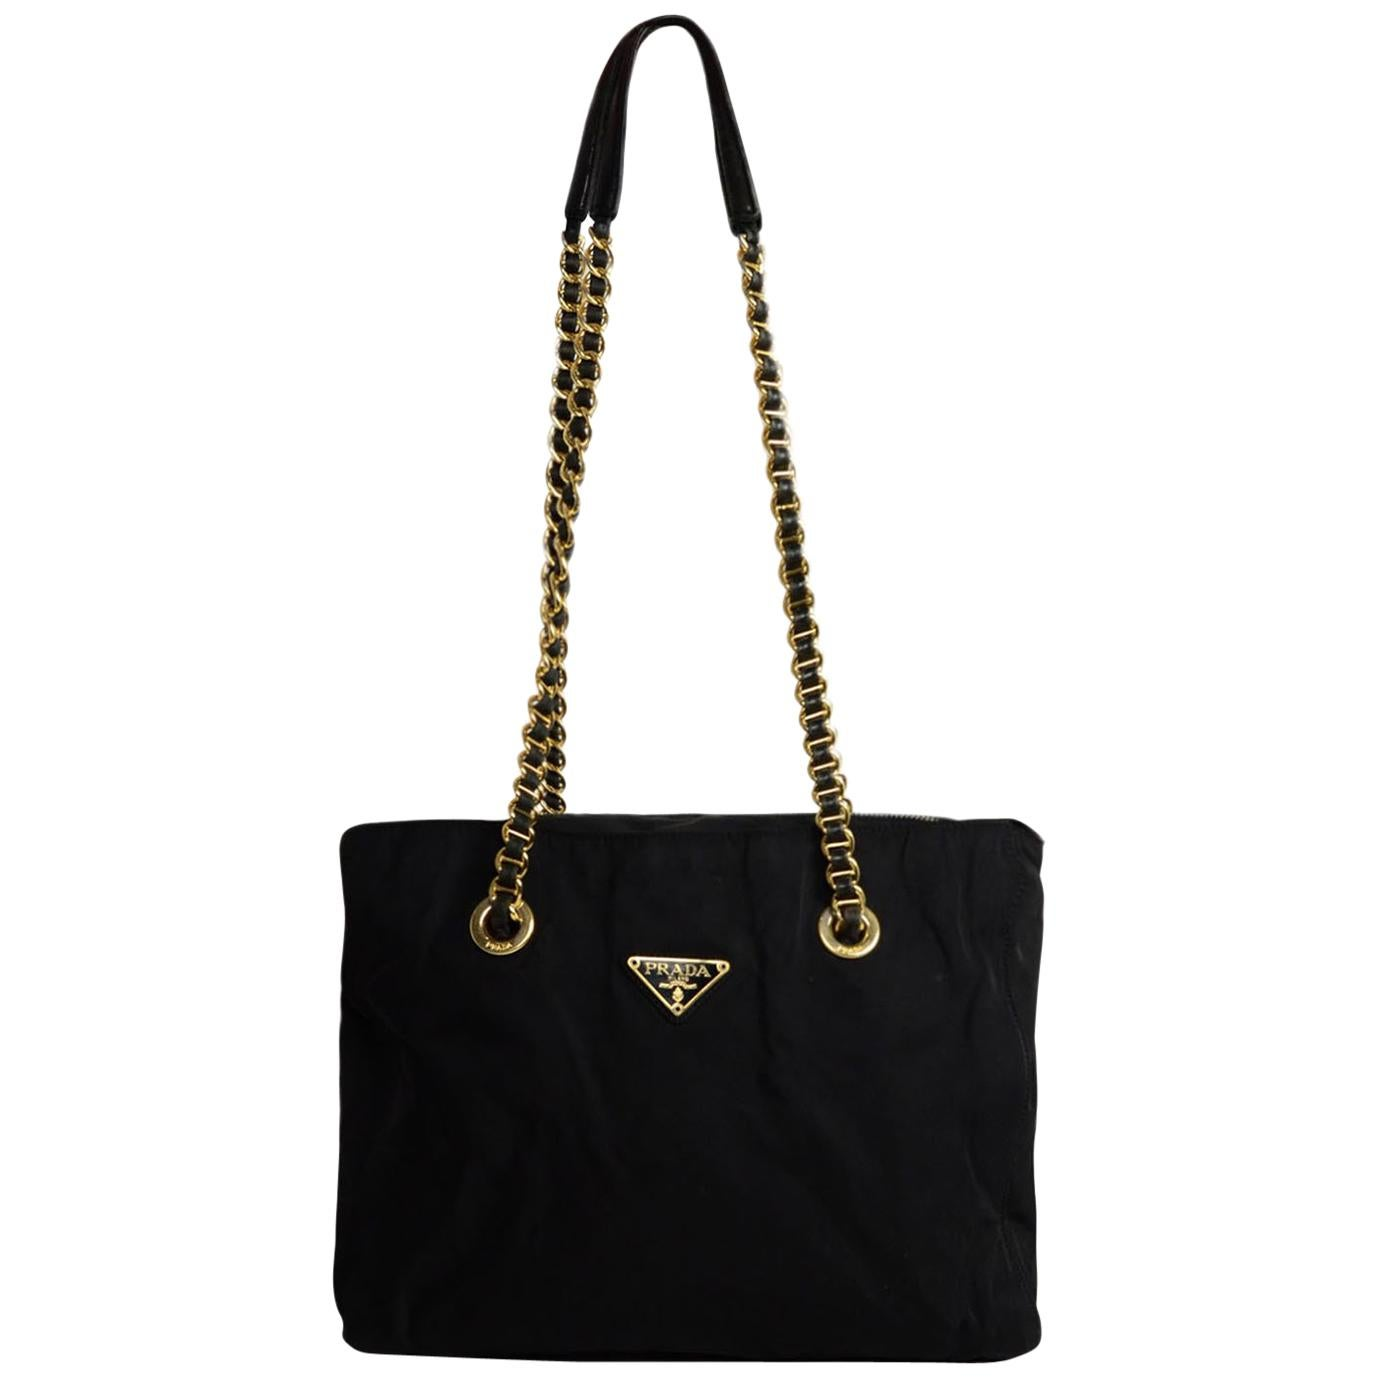 97b0502d61e2 Vintage Prada Tote Bags - 295 For Sale at 1stdibs